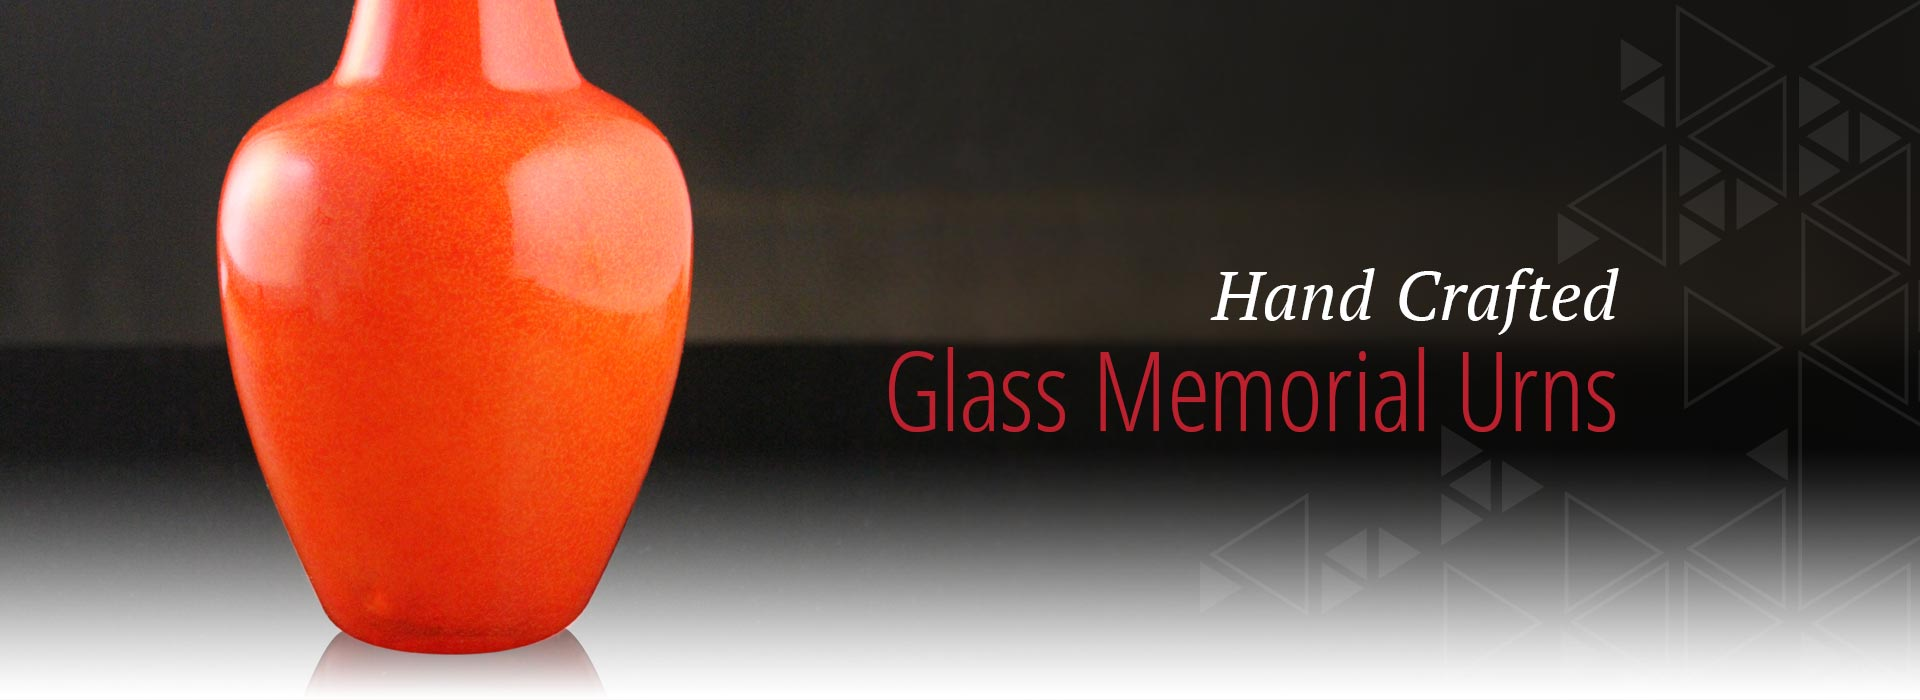 hand crafted glass memorial urns